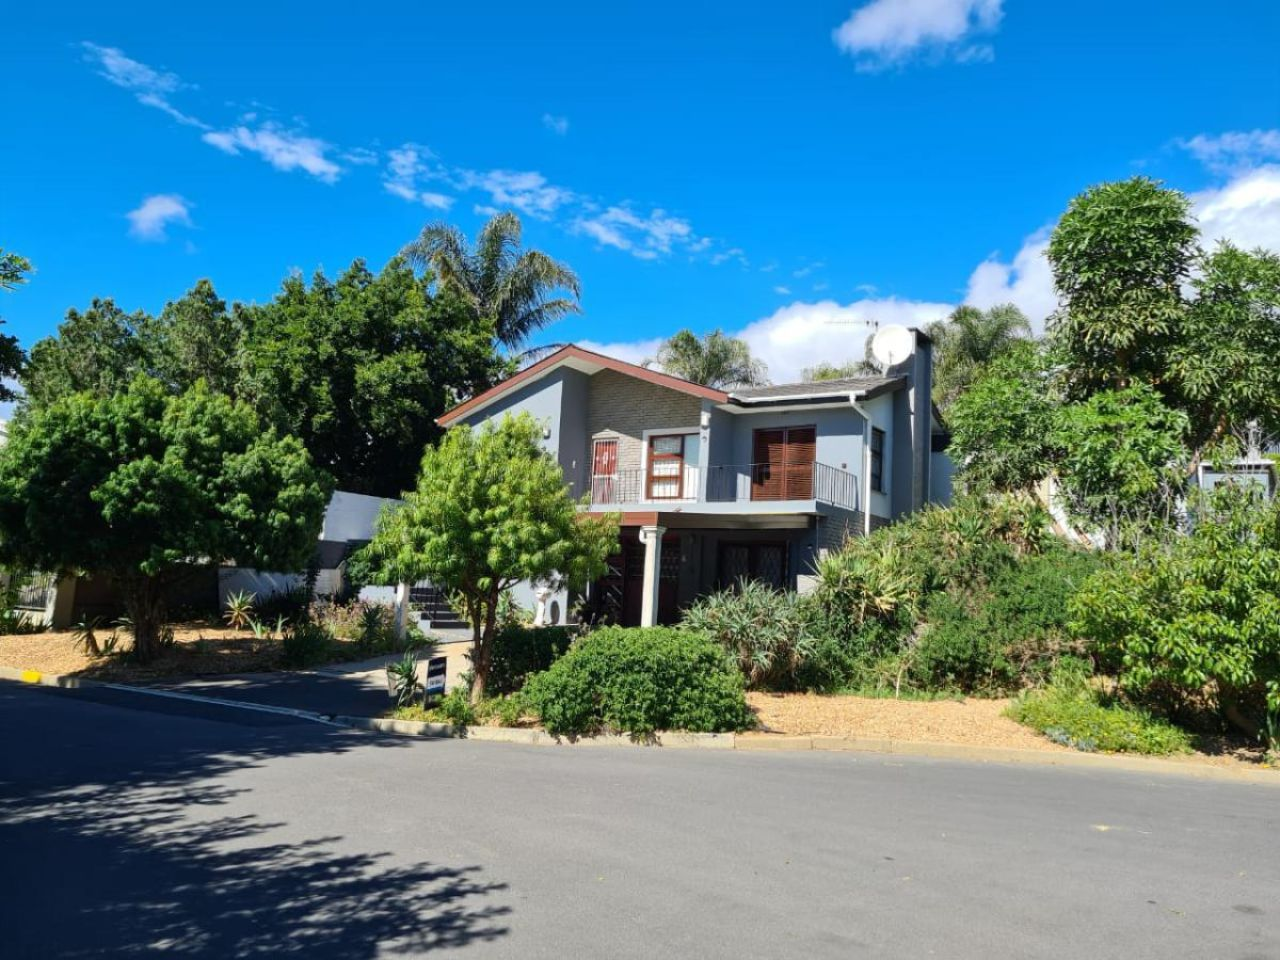 20 Bedroom house for sale in Paarl Central